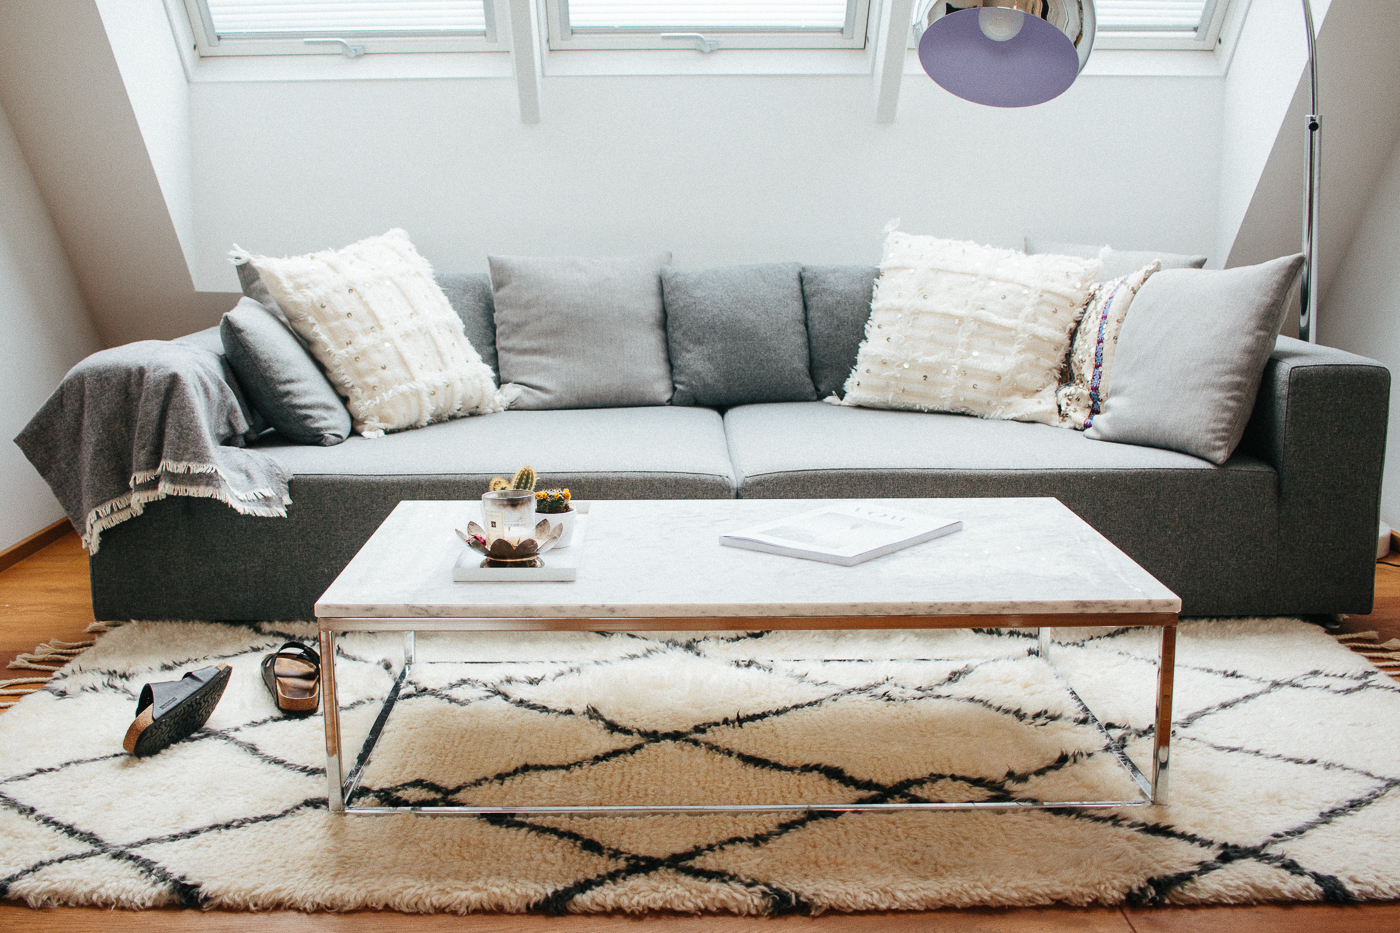 White Marble Coffee Table Interior Inspiration   Love Daily Dose